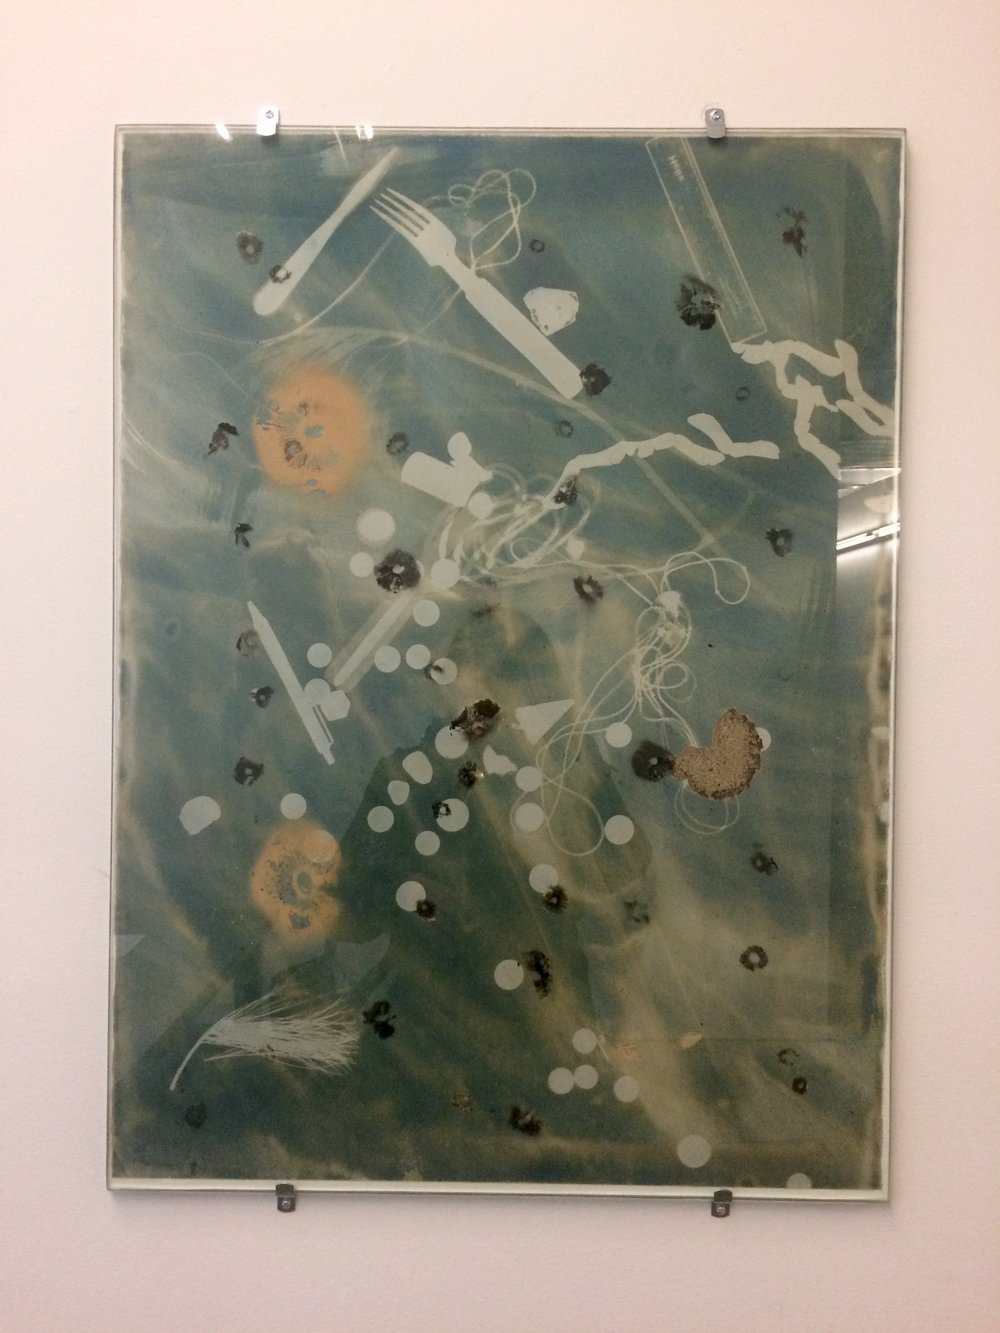 Essye Klempner  Sun Stains with Traces of Past Portraits, iv  Toned Cyanotype, Glass and Mushroom Spores